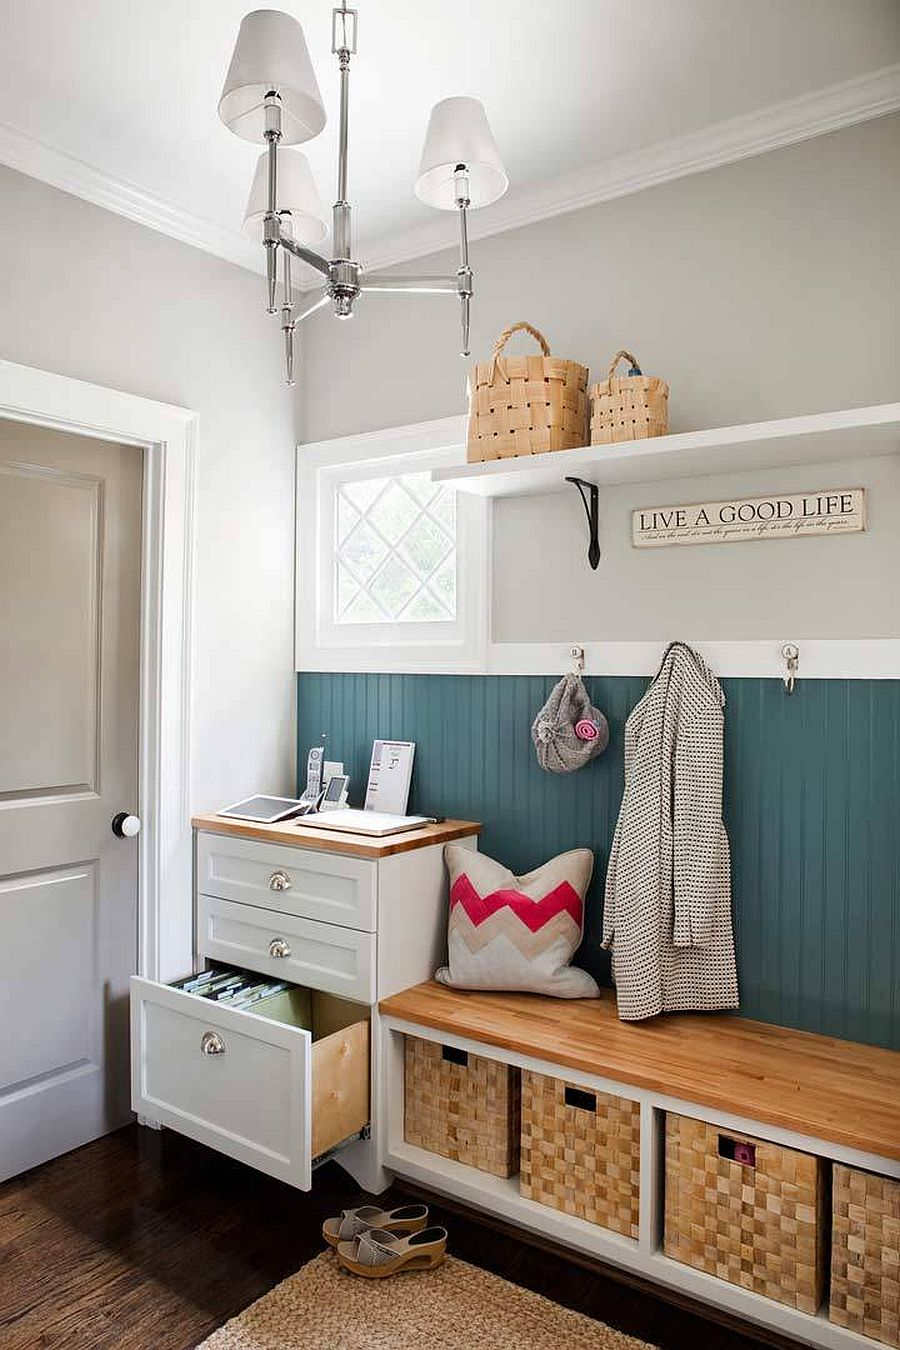 Using-baskets-in-the-space-underneath-the-bench-give-you-more-felxible-storage-options-in-the-mudroom-13459